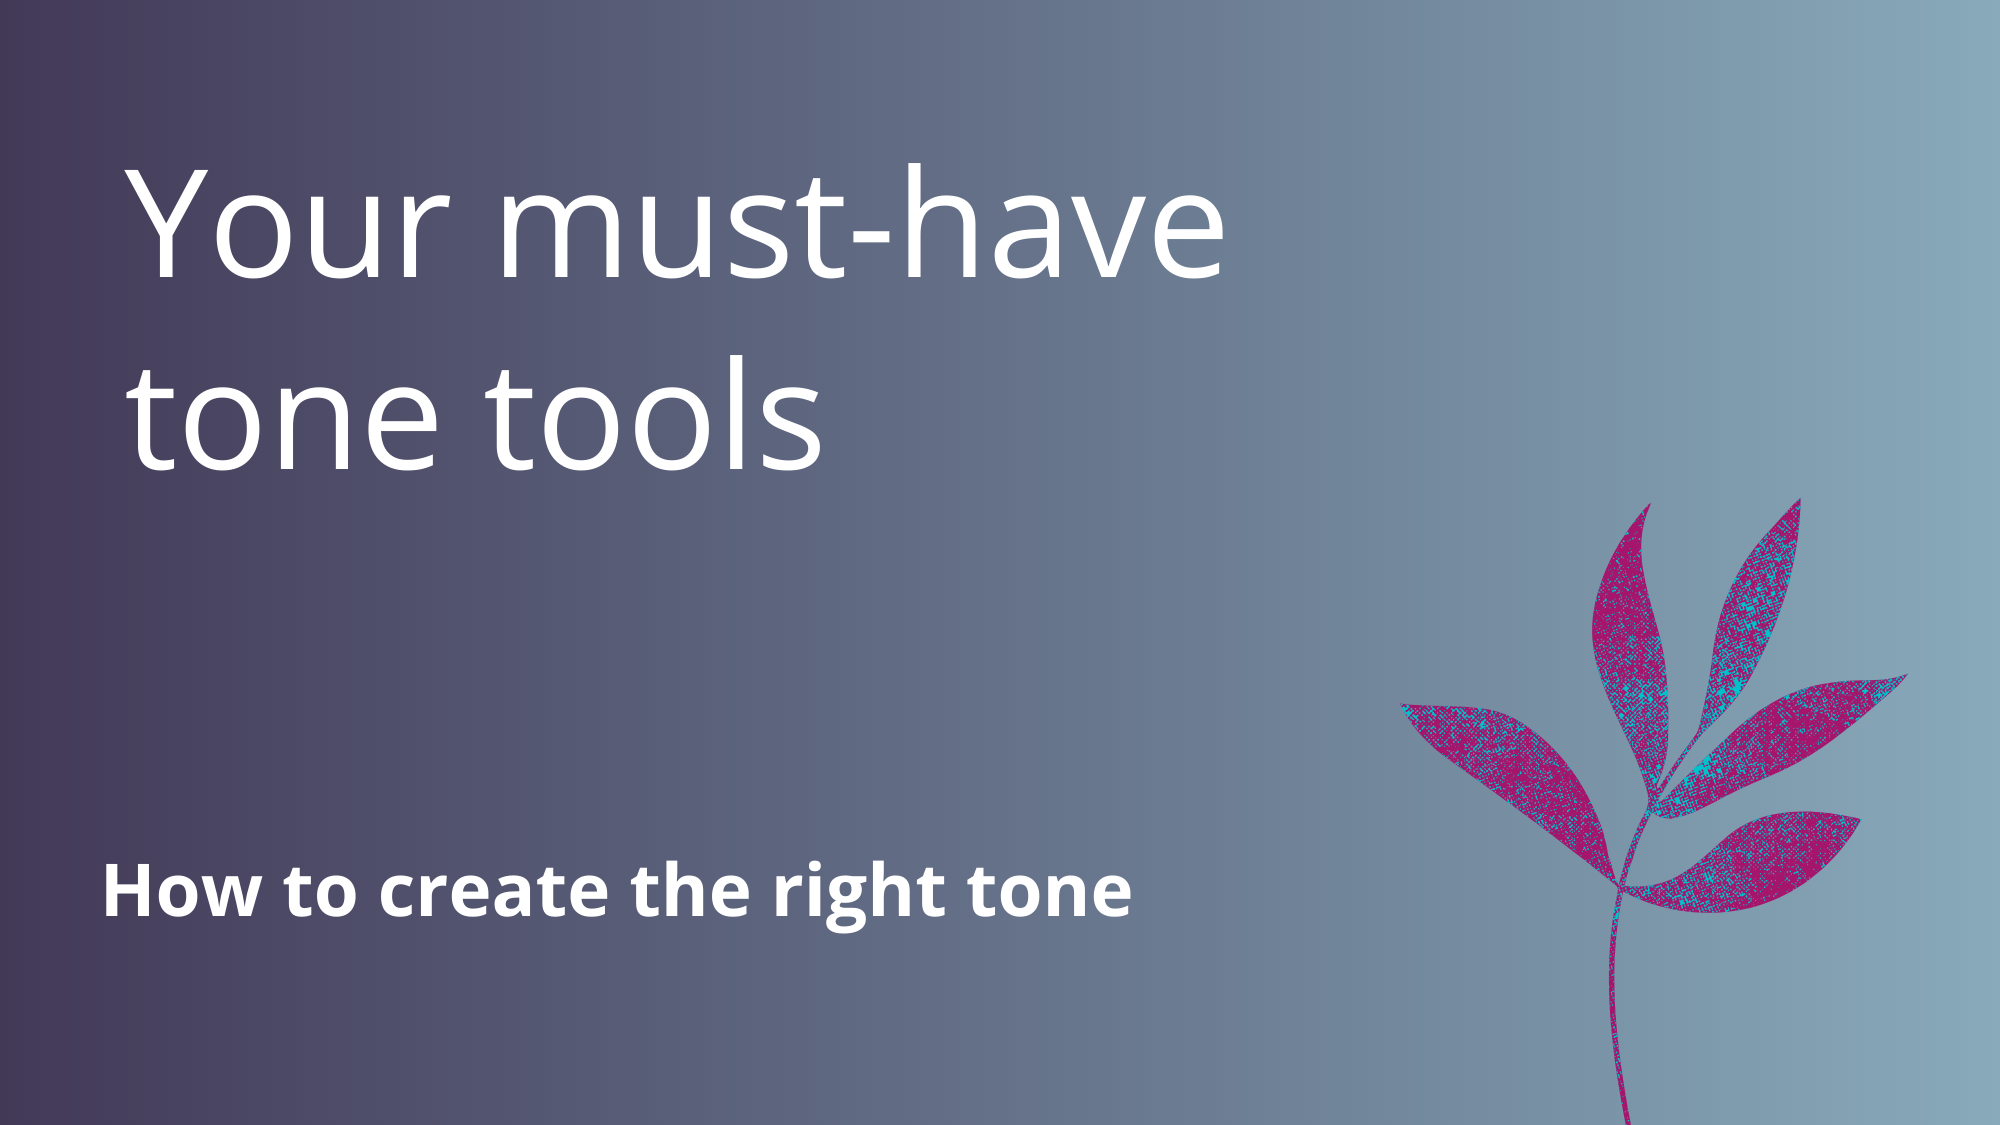 Your must-have tone tools